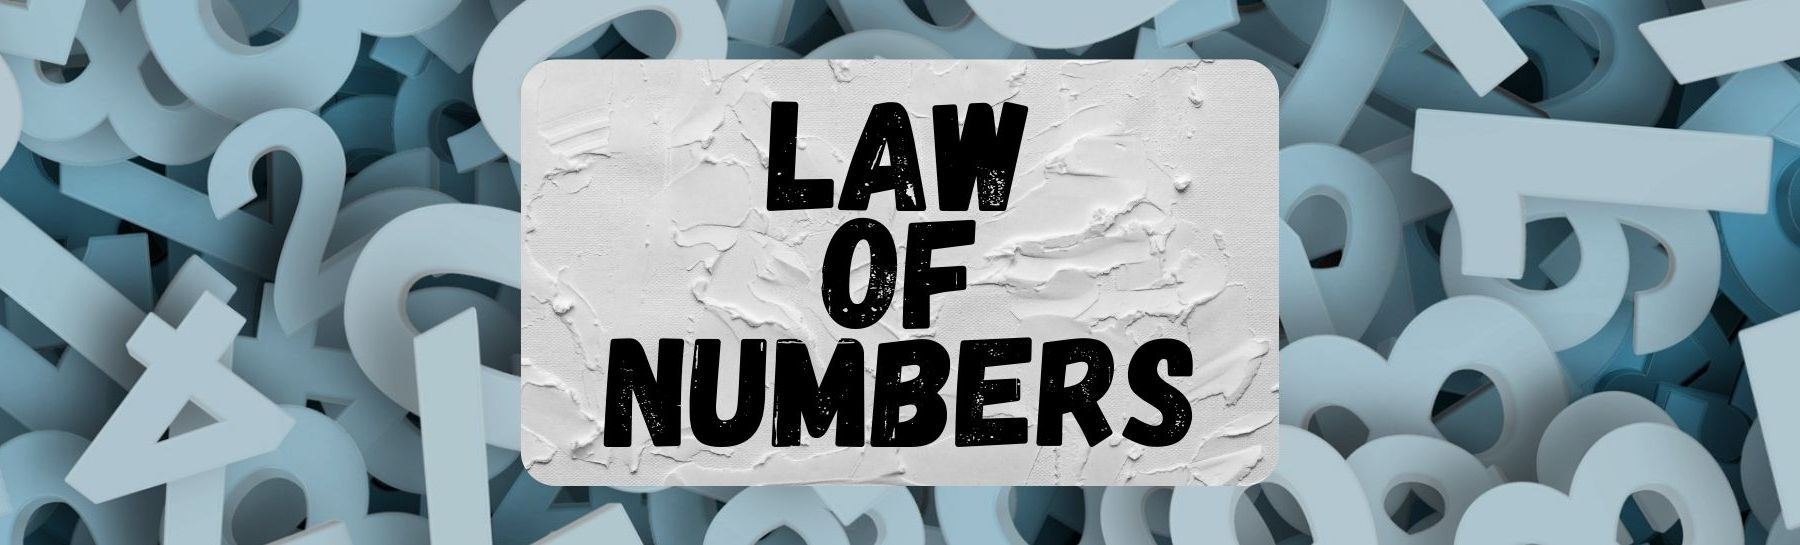 law of numbers